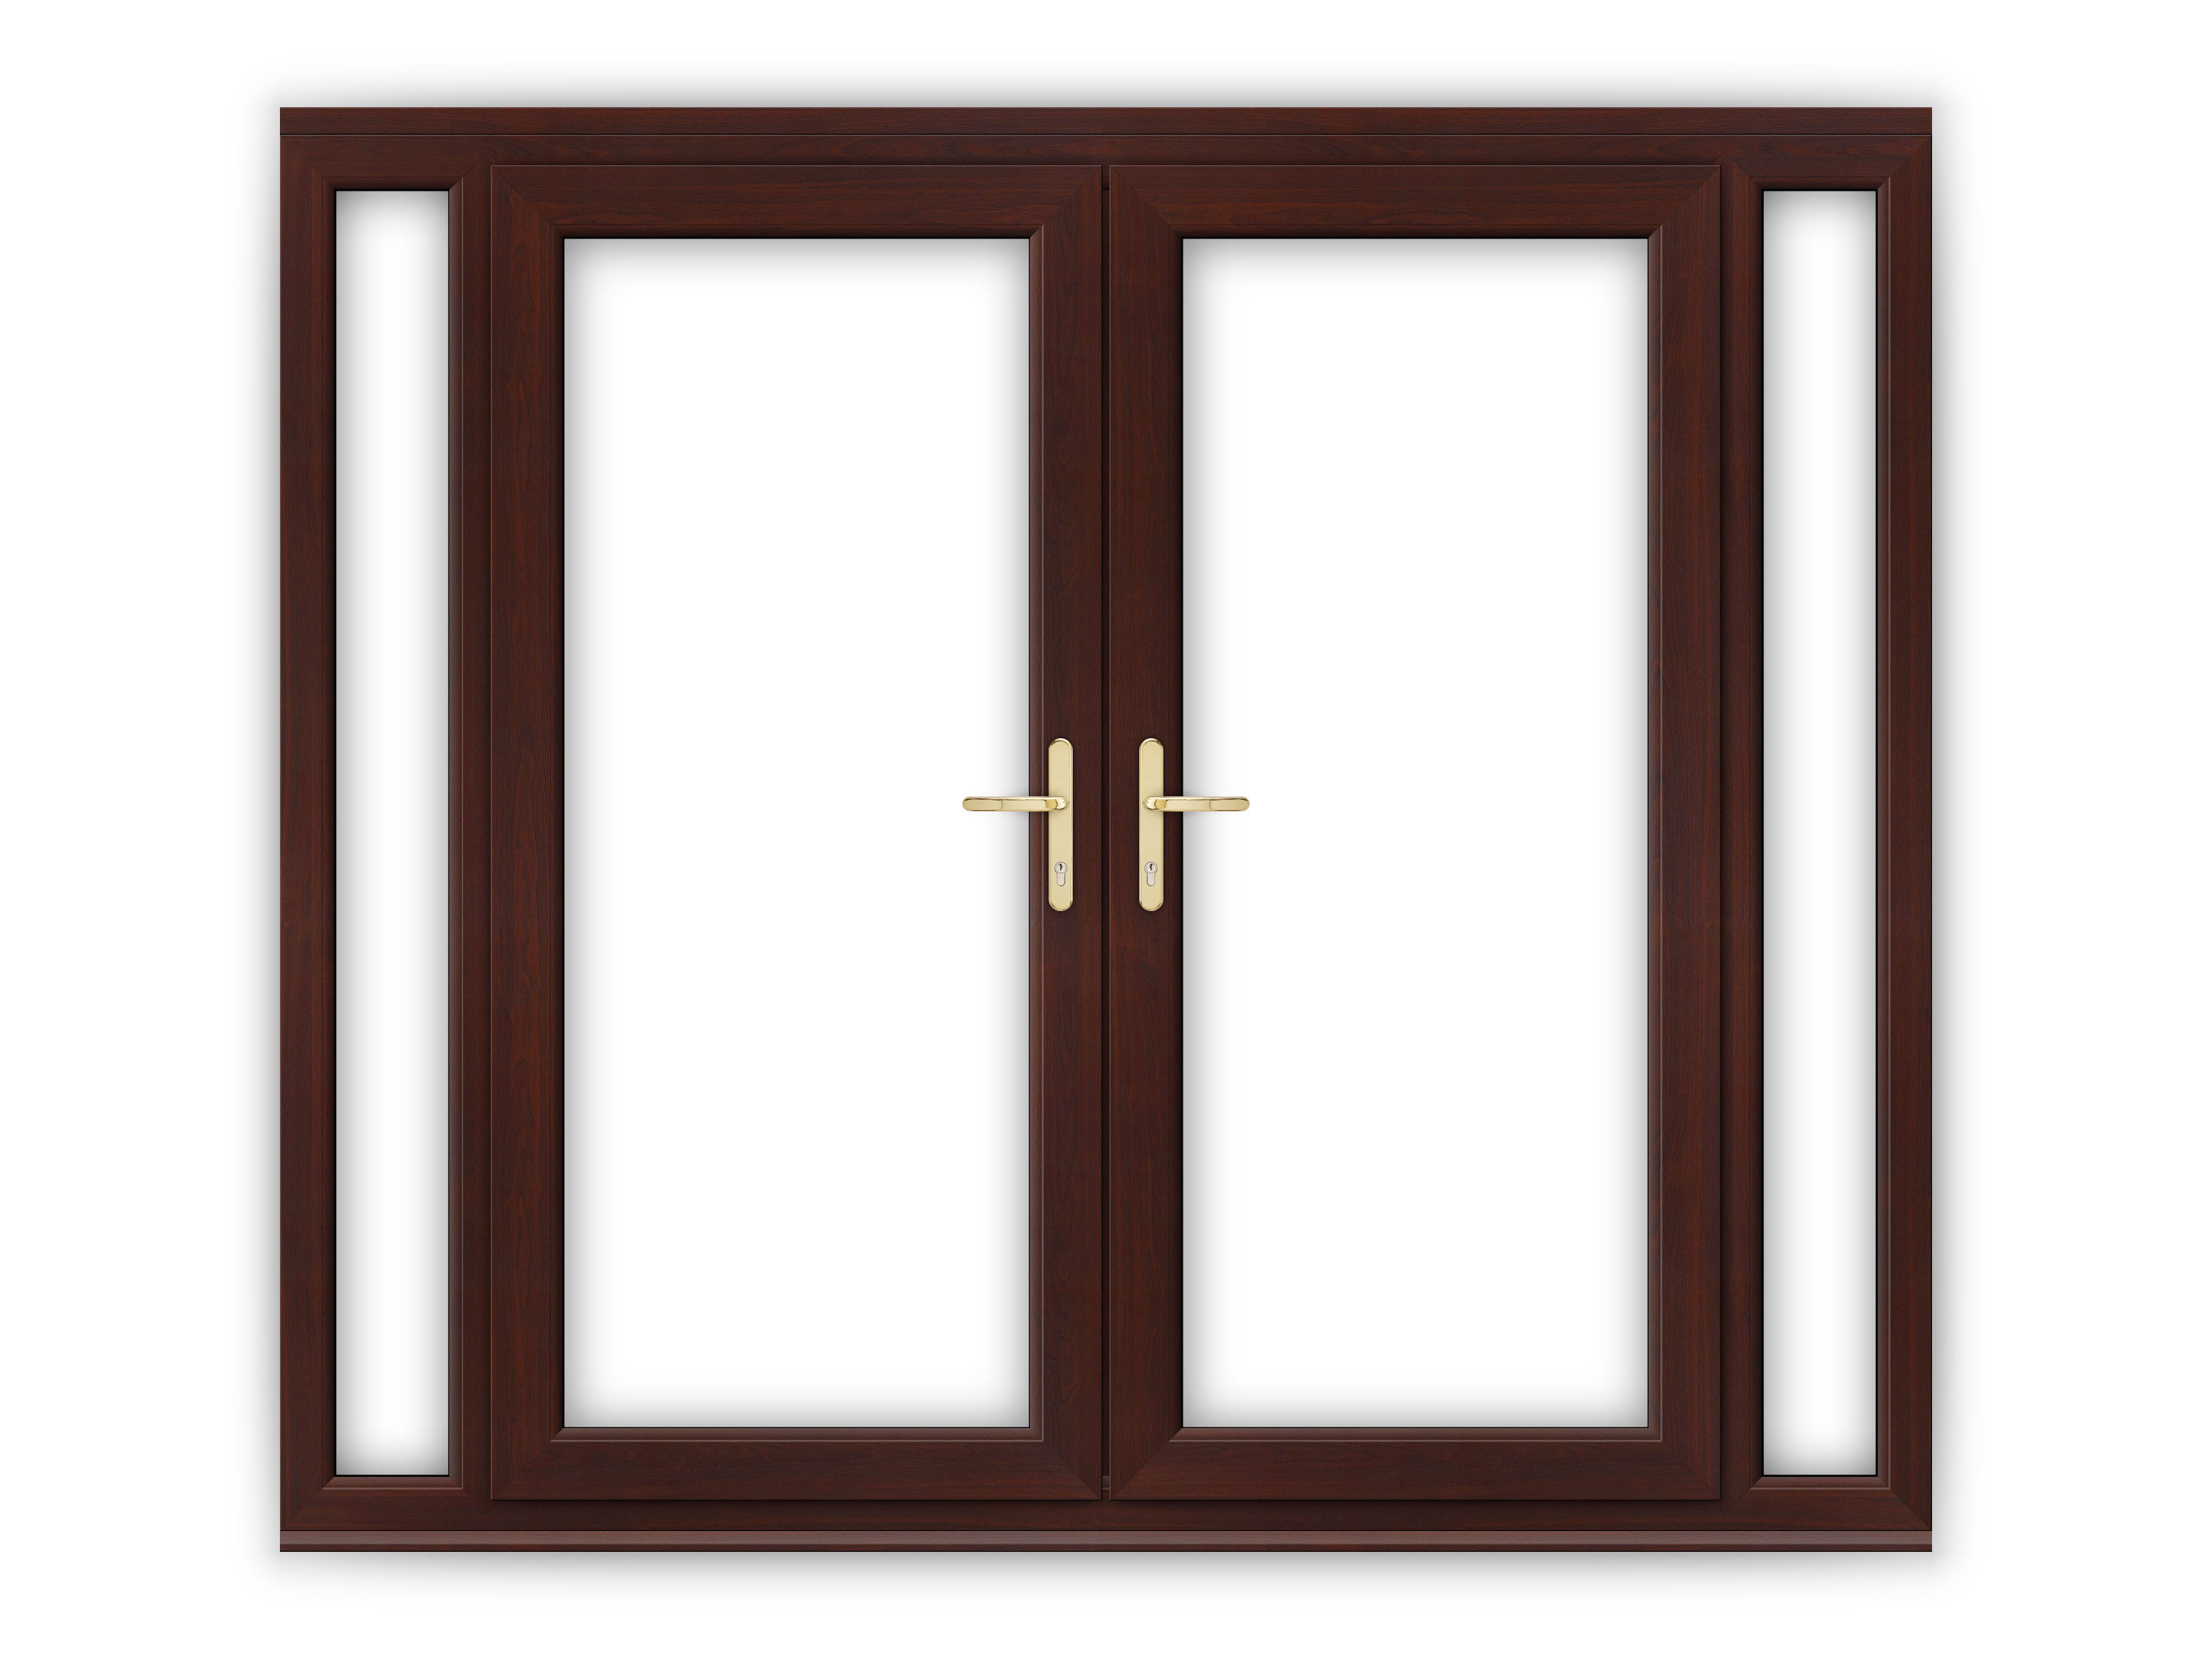 6ft rosewood upvc french doors with narrow side panels for Narrow french patio doors